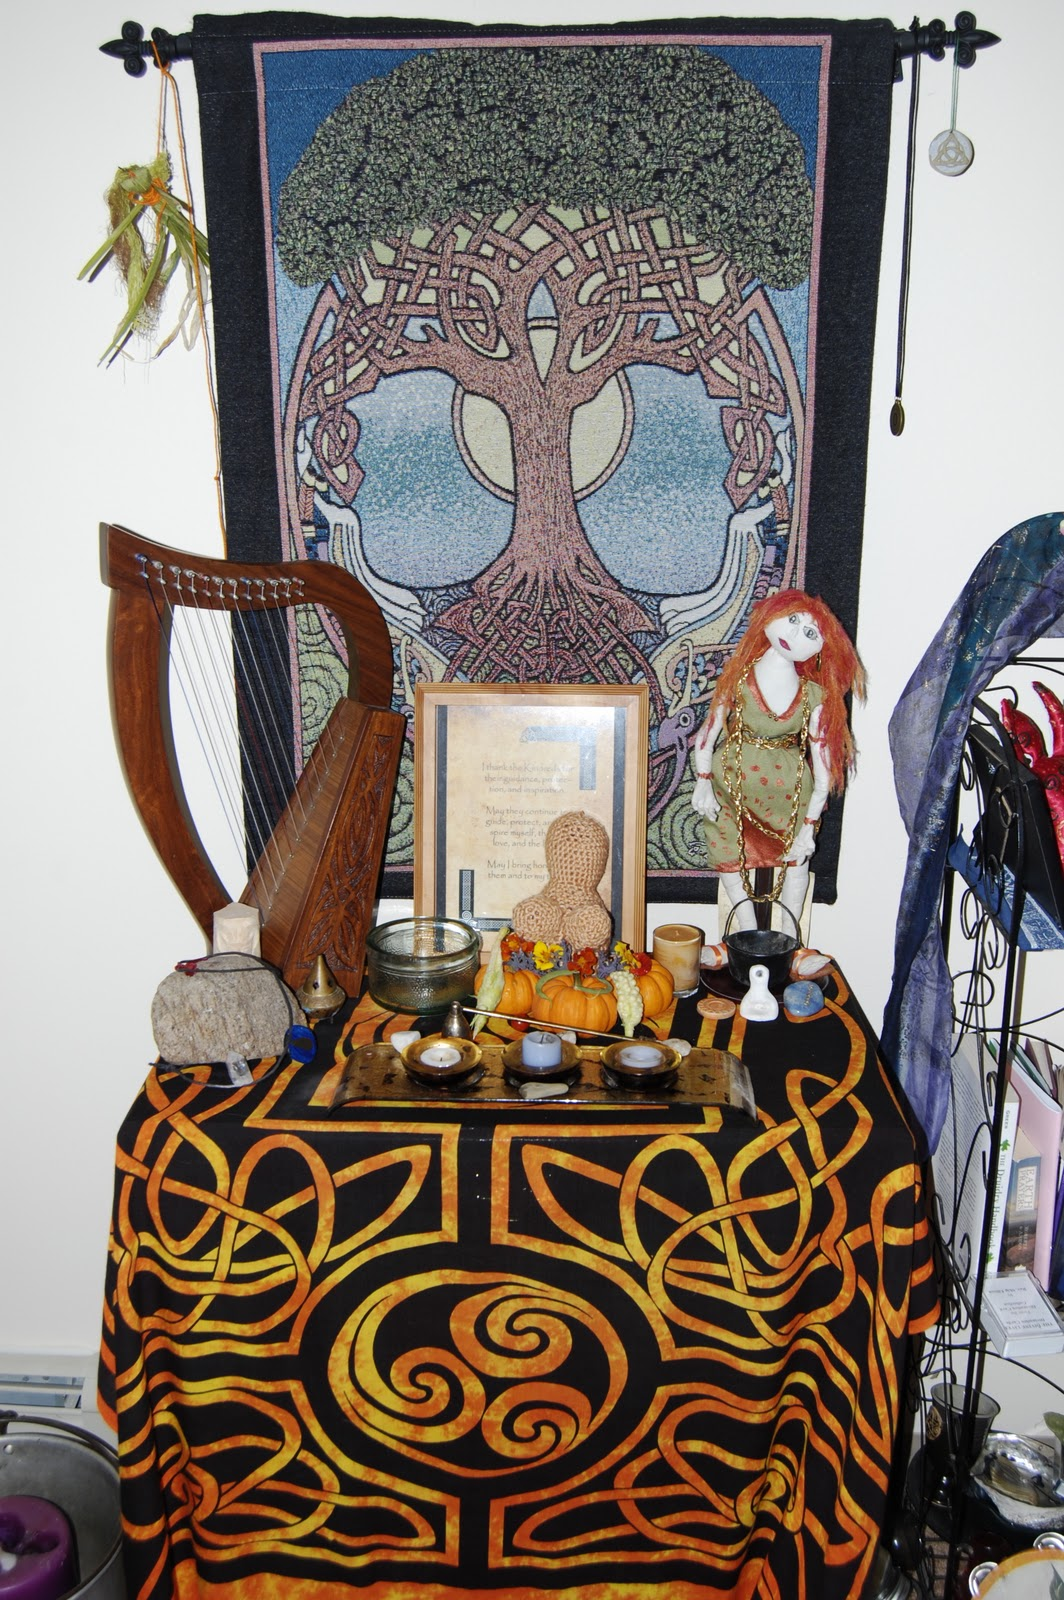 The Ditzy Druid My Autumn Equinox Part One